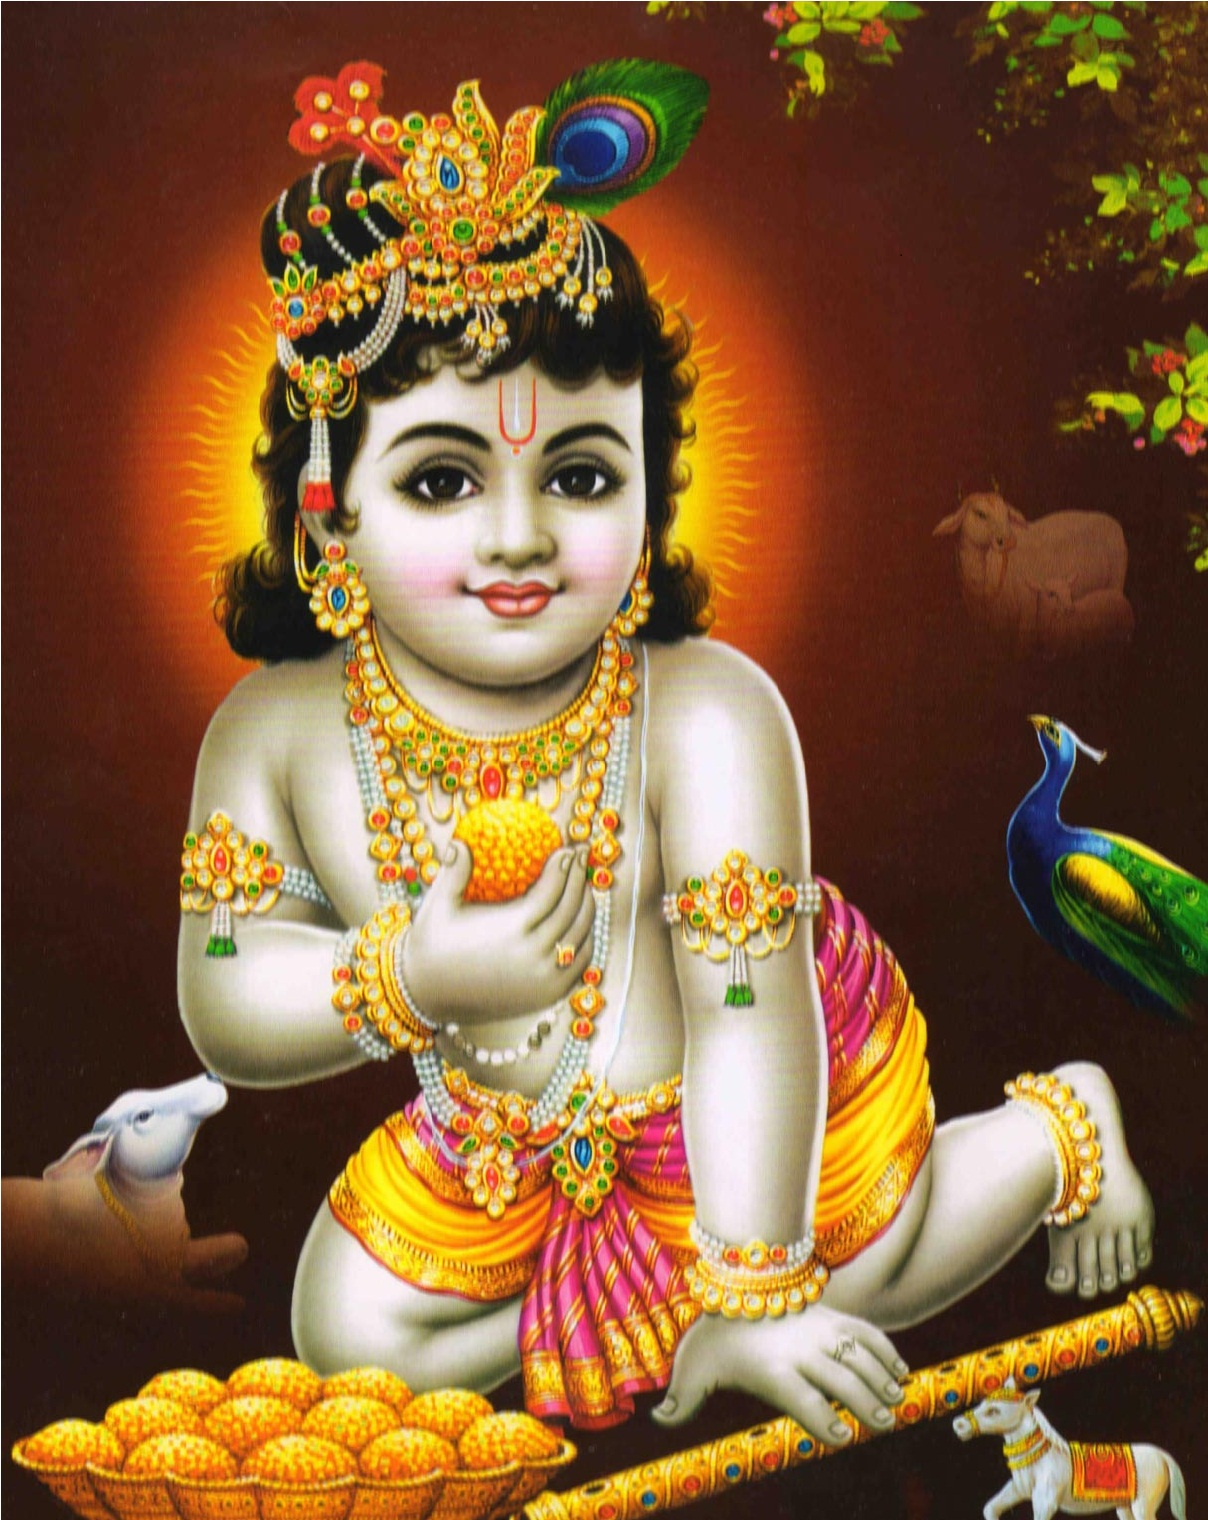 Pictures of hindu gods and goddesses for mobile